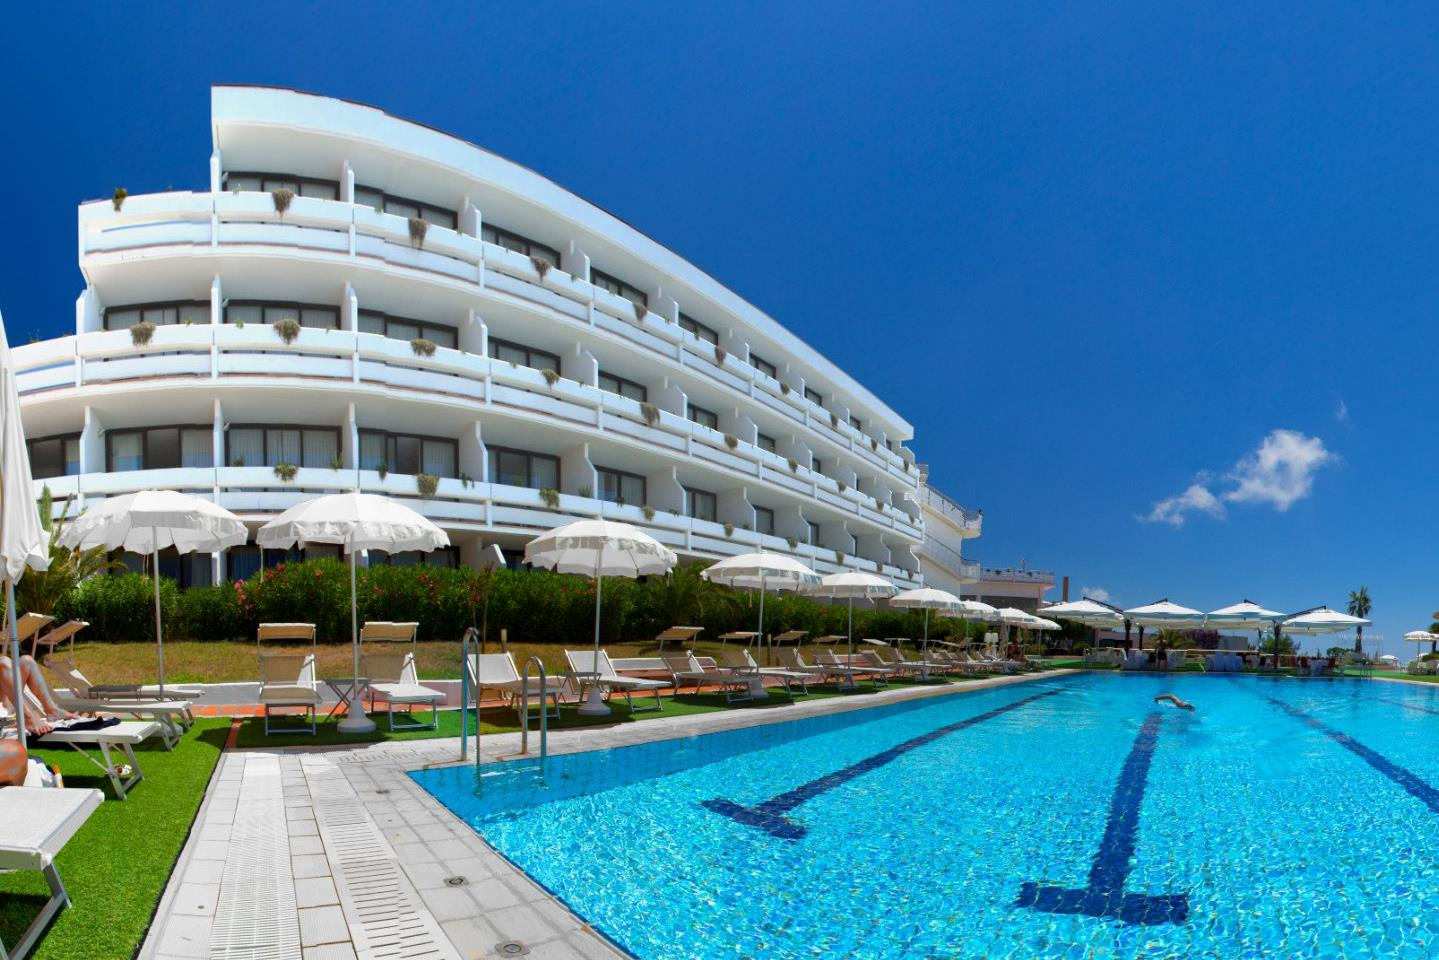 Deluxe 4* award winning Italian escape from £299pp saving 30%